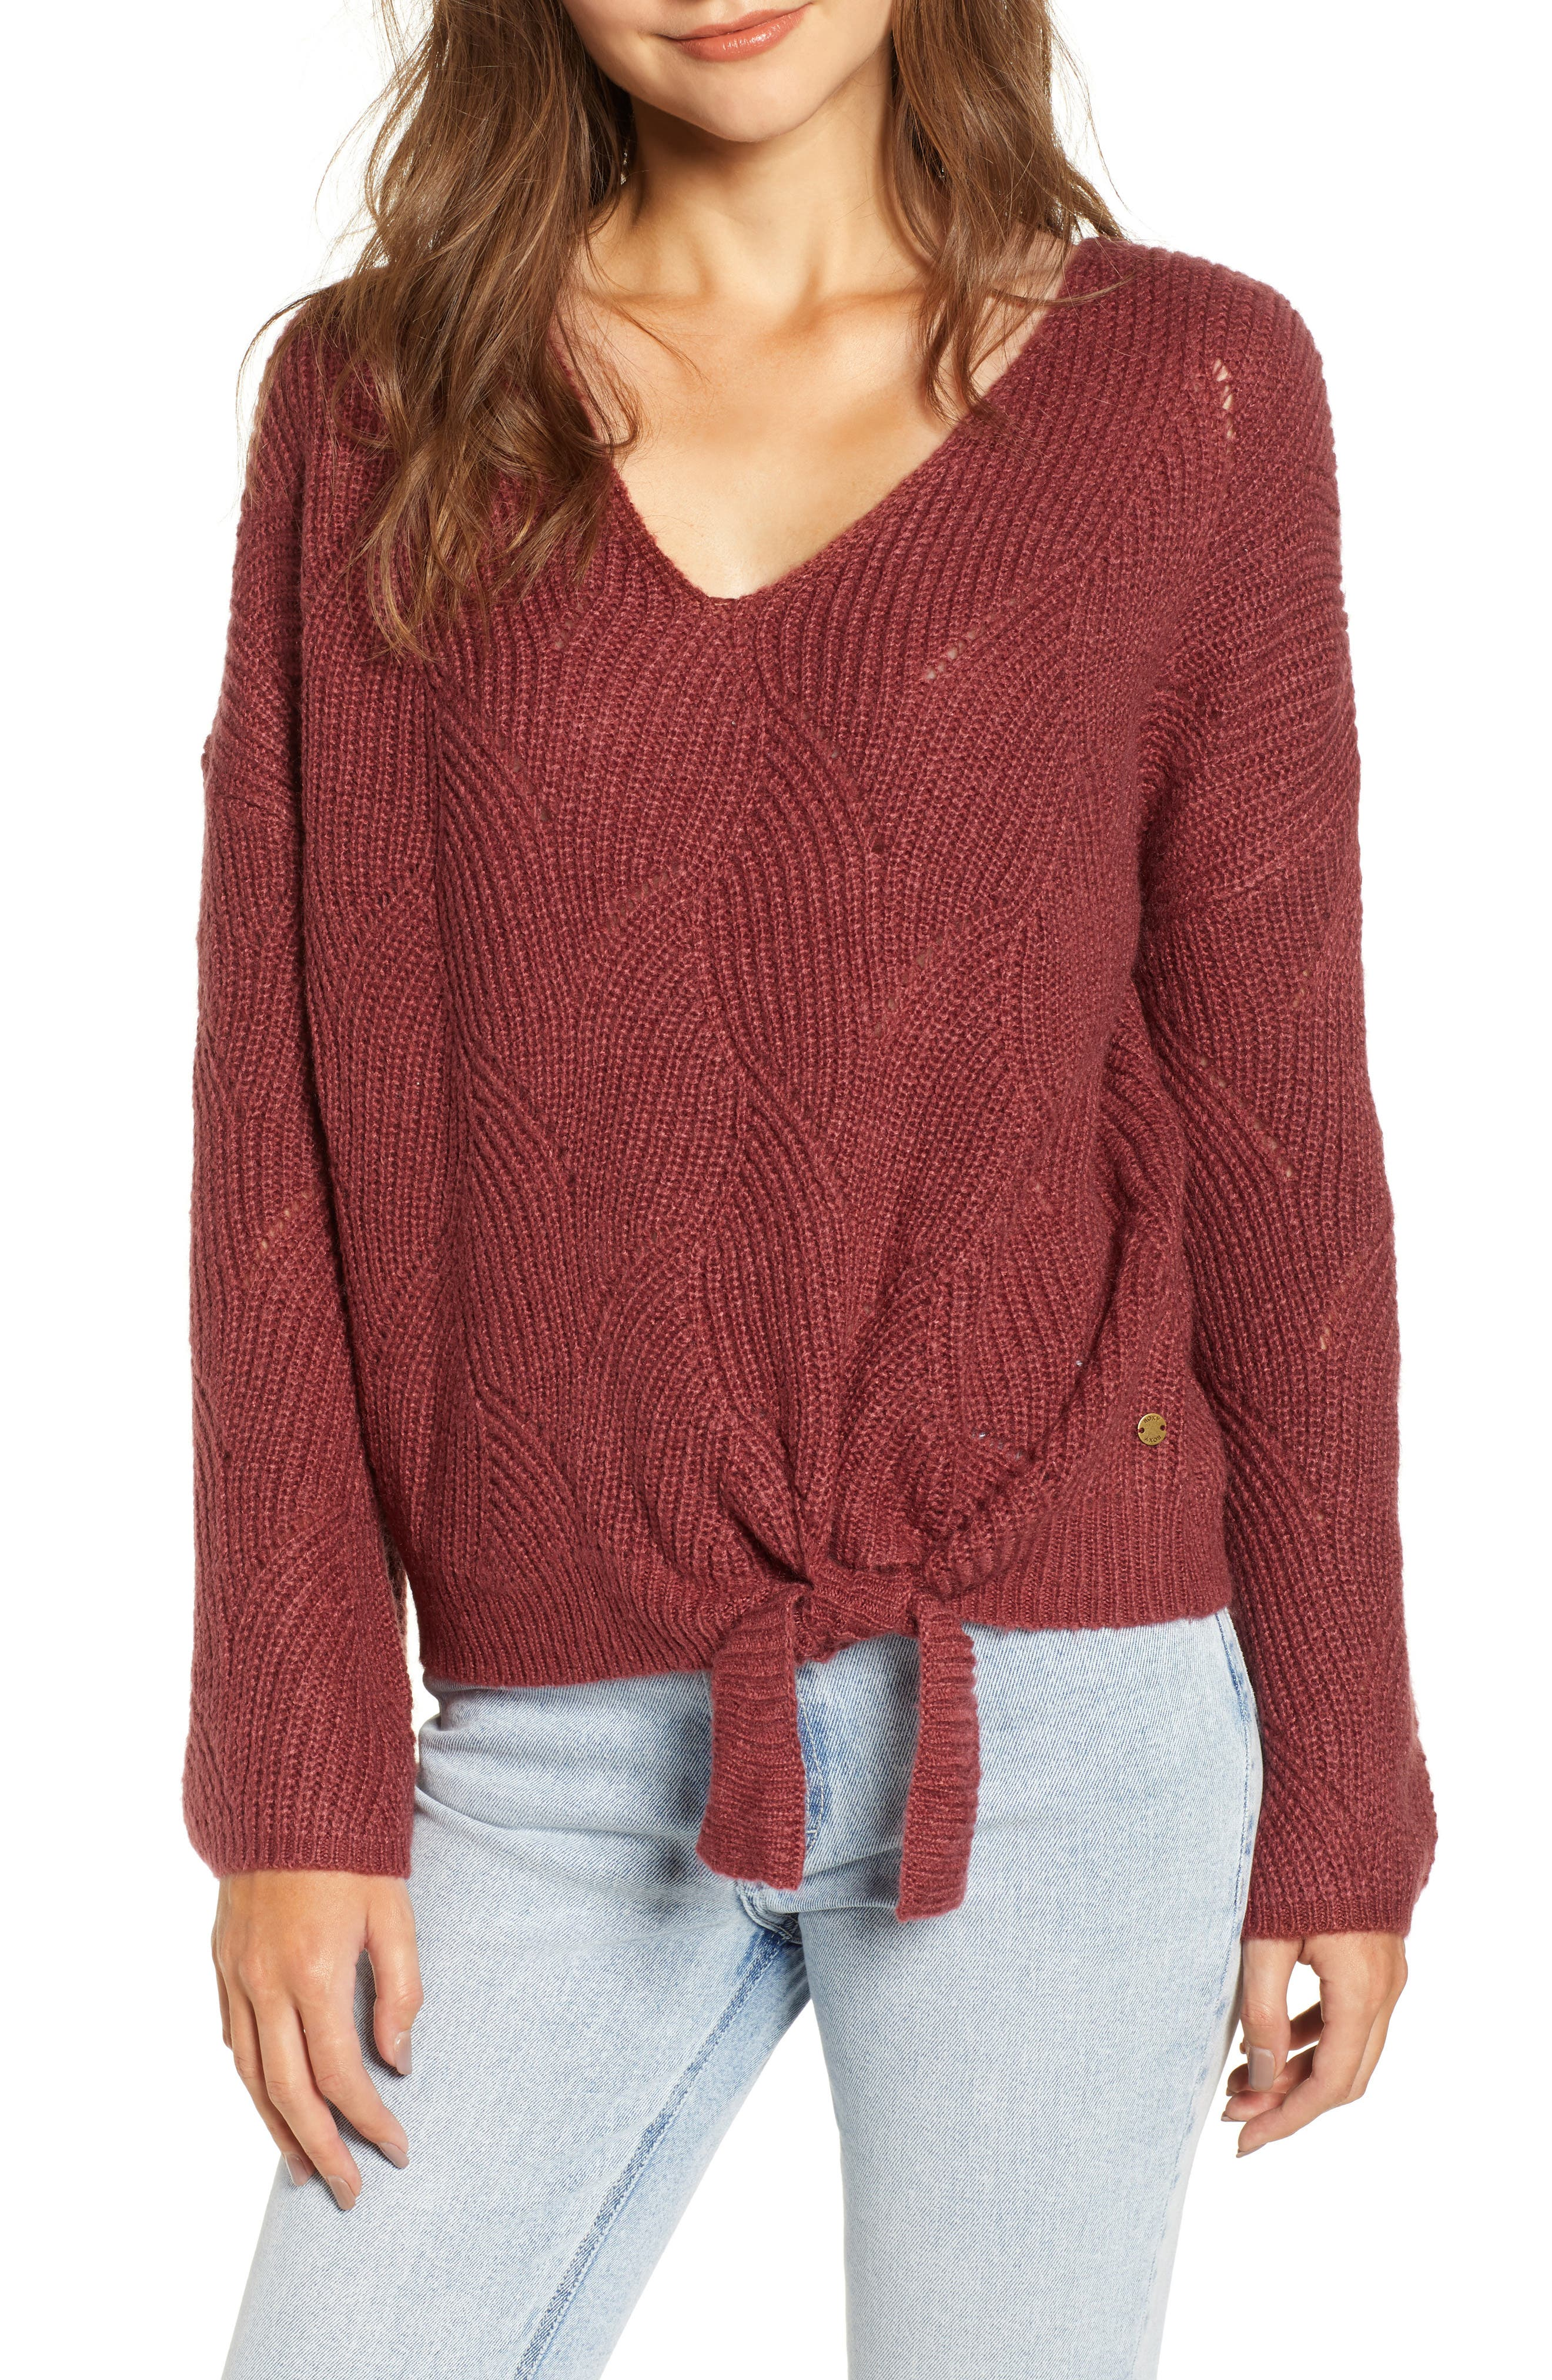 See You In Bali Sweater,                         Main,                         color, OXBLOOD RED